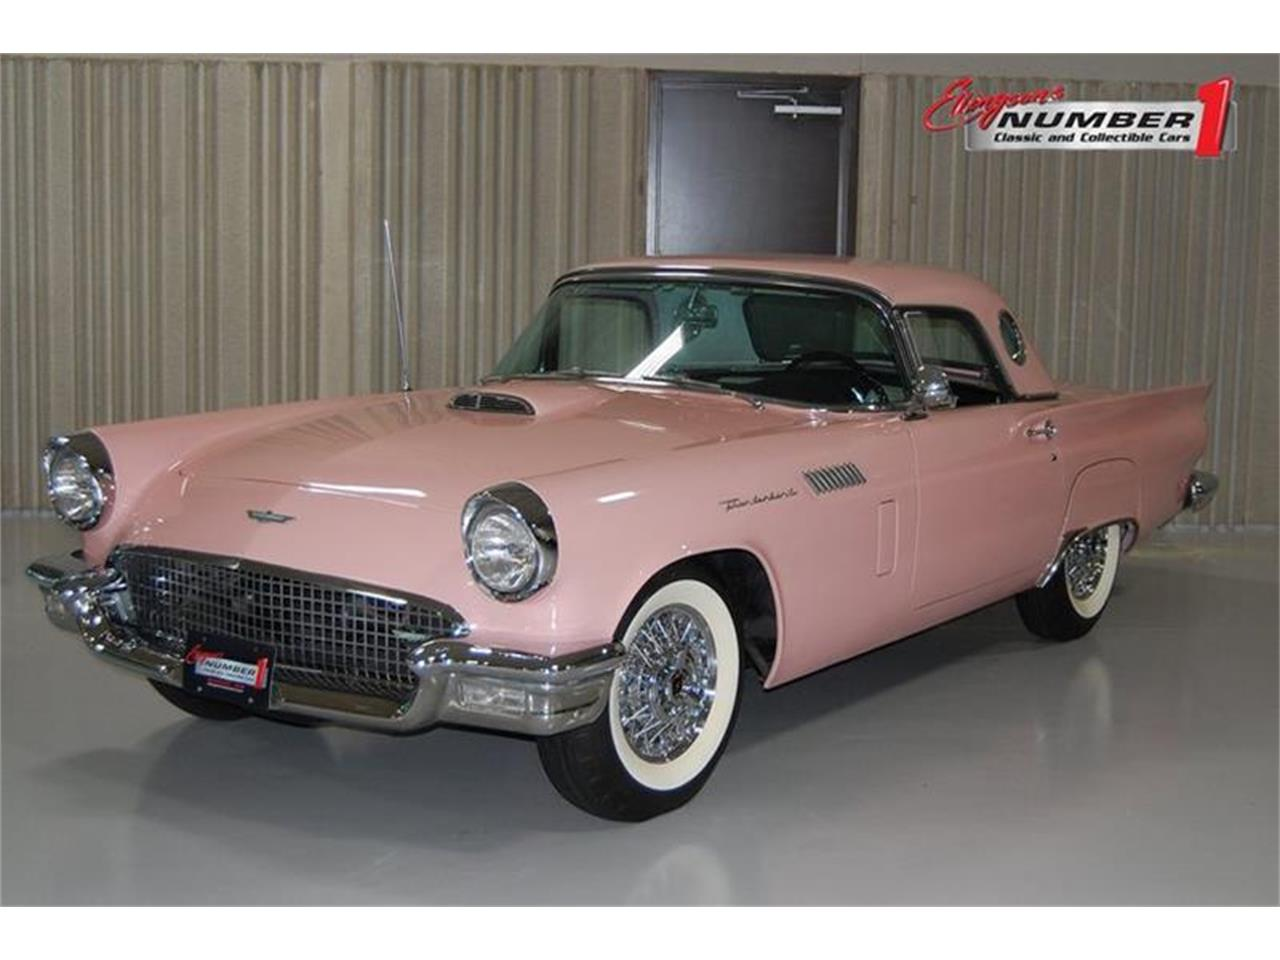 hight resolution of 1957 ford thunderbird for sale classiccars com cc 1195454 1956 thunderbird also 1957 ford thunderbird further studebaker wiring